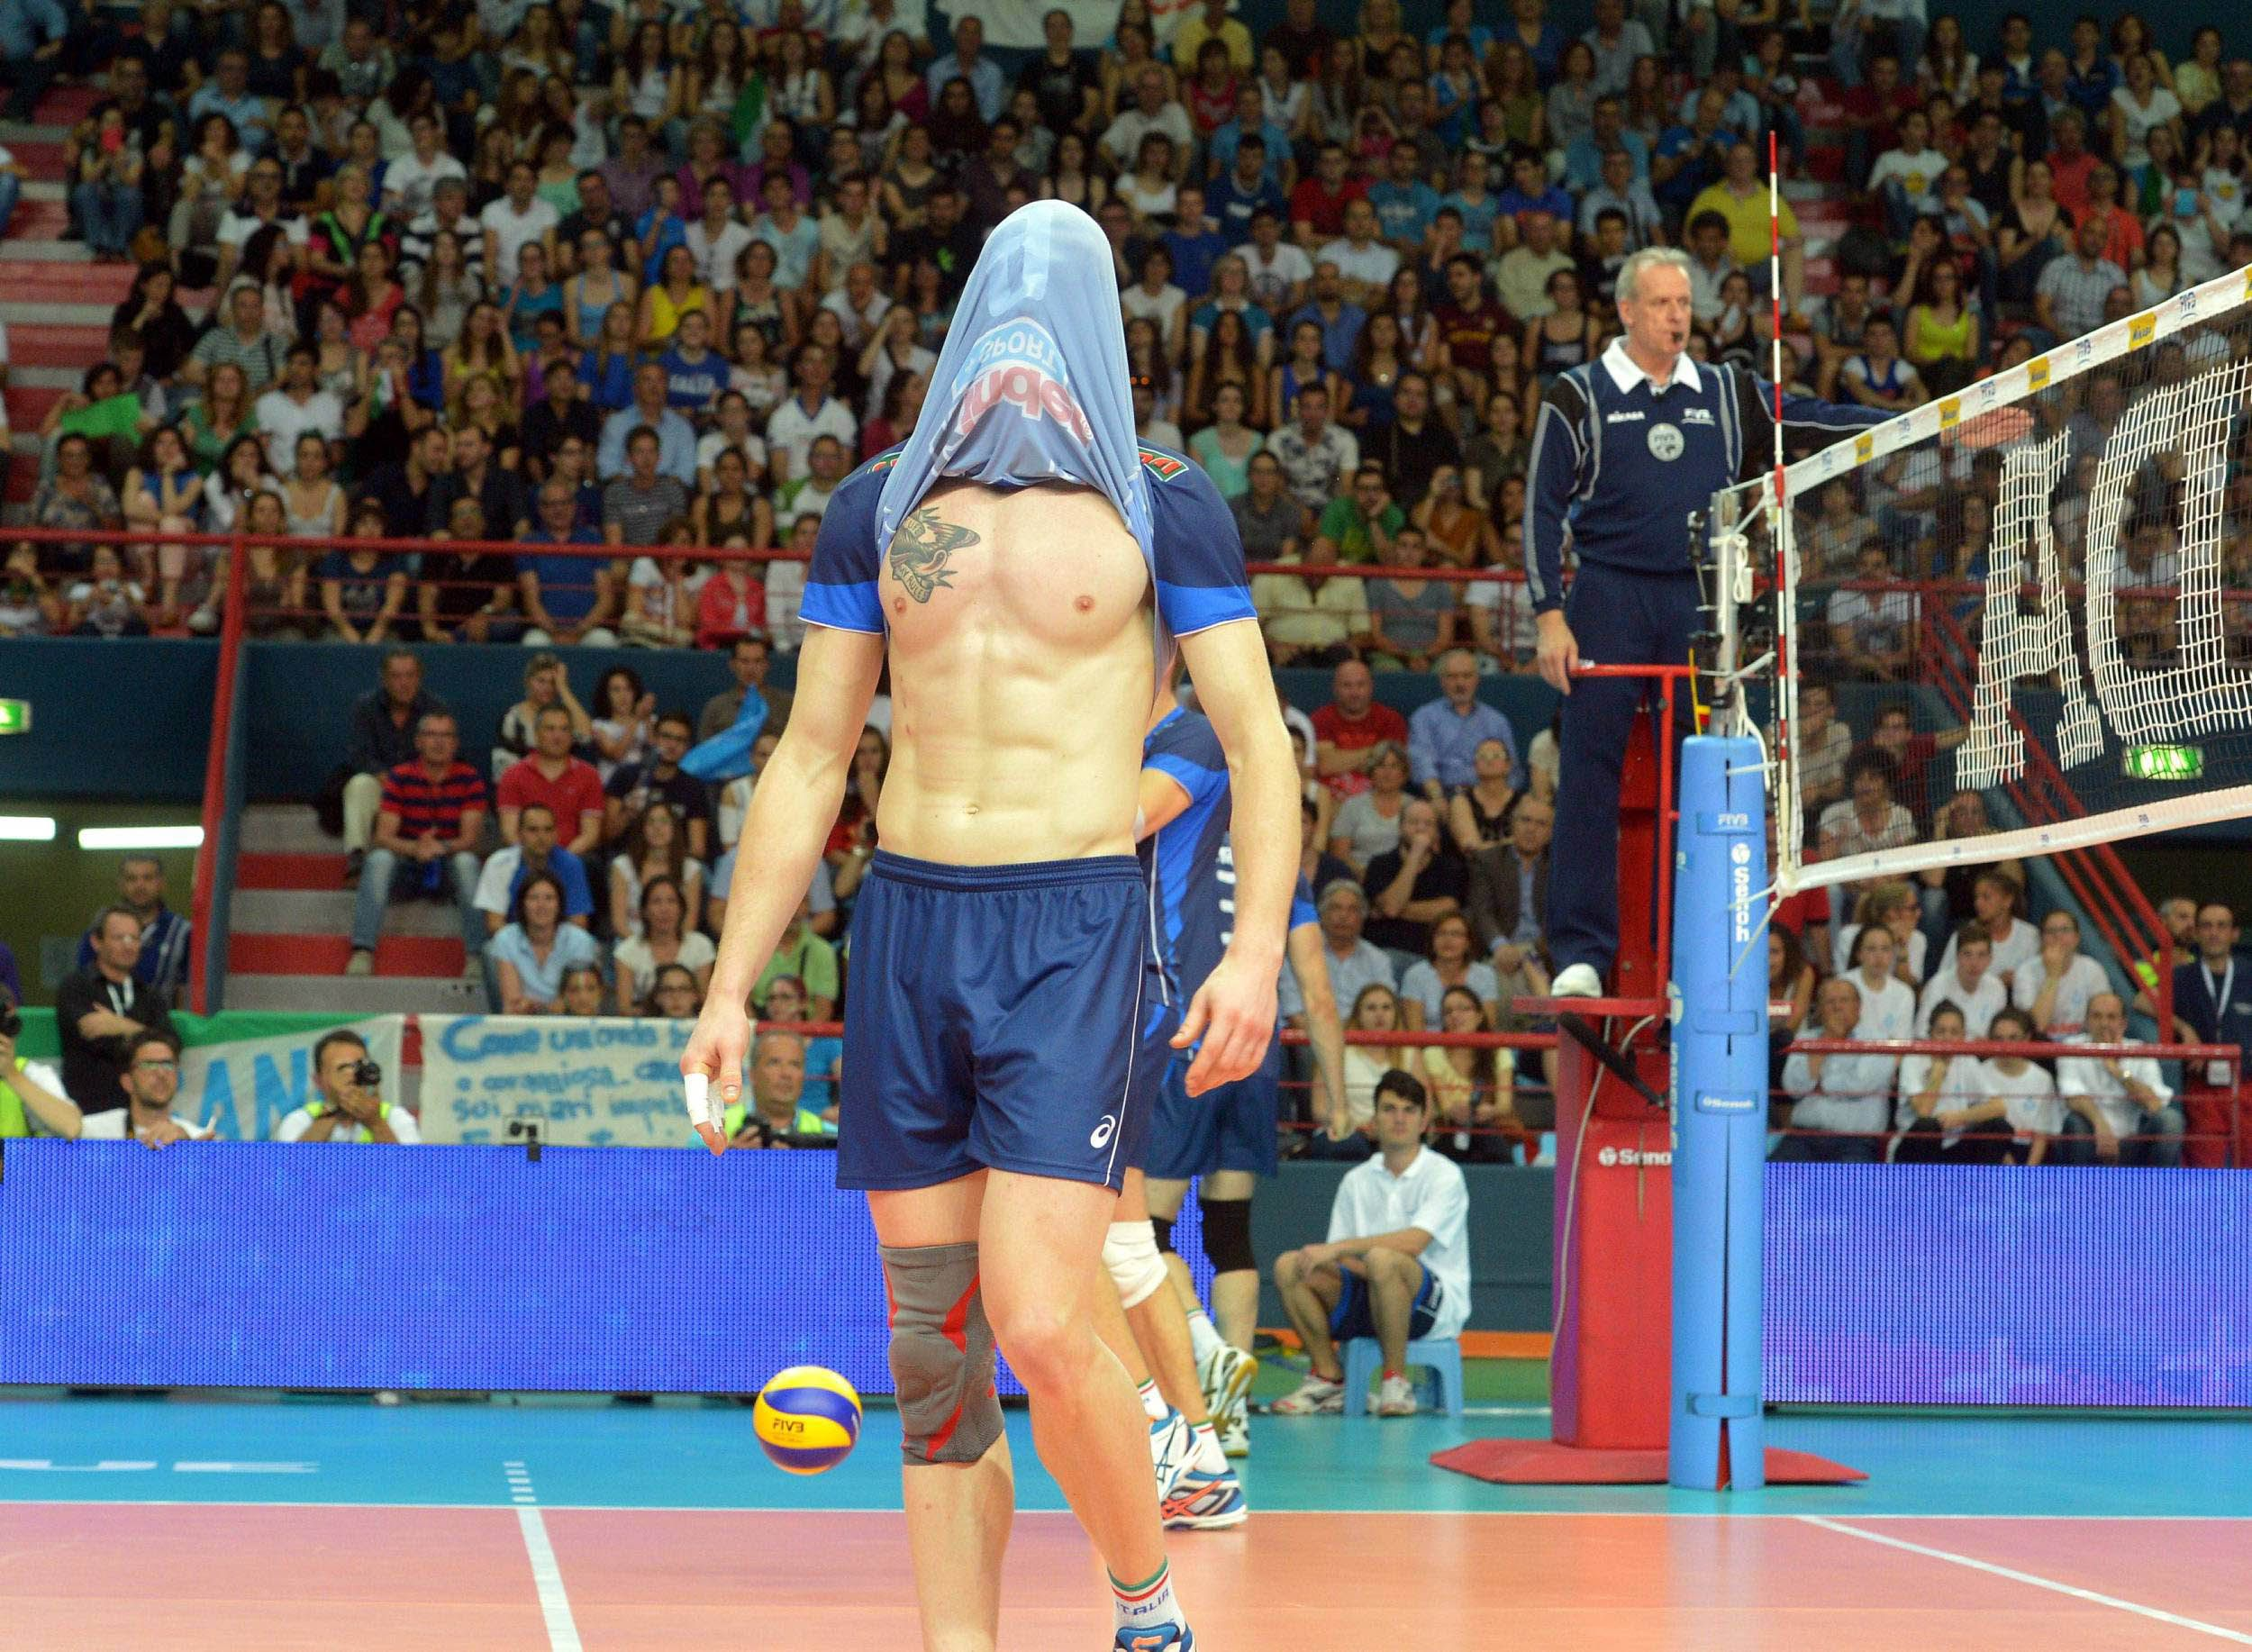 He S So Immature I Love It Fun Sports Athlete Volleyball